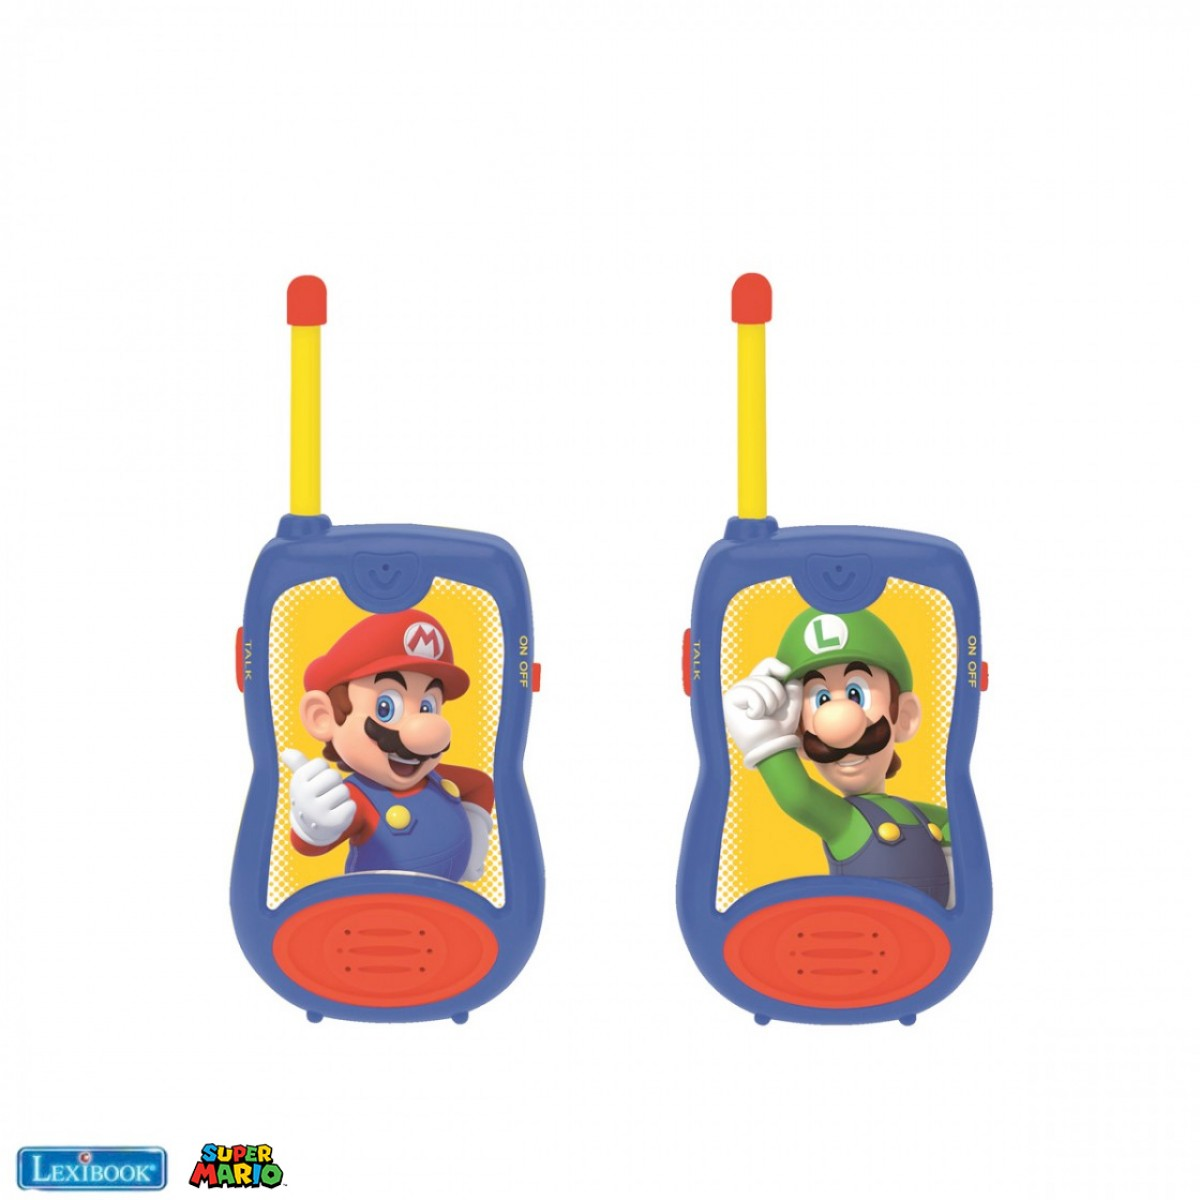 Super Mario Walkie-Talkies, Gürtelclip, Batterie, für Kinder / Jungen